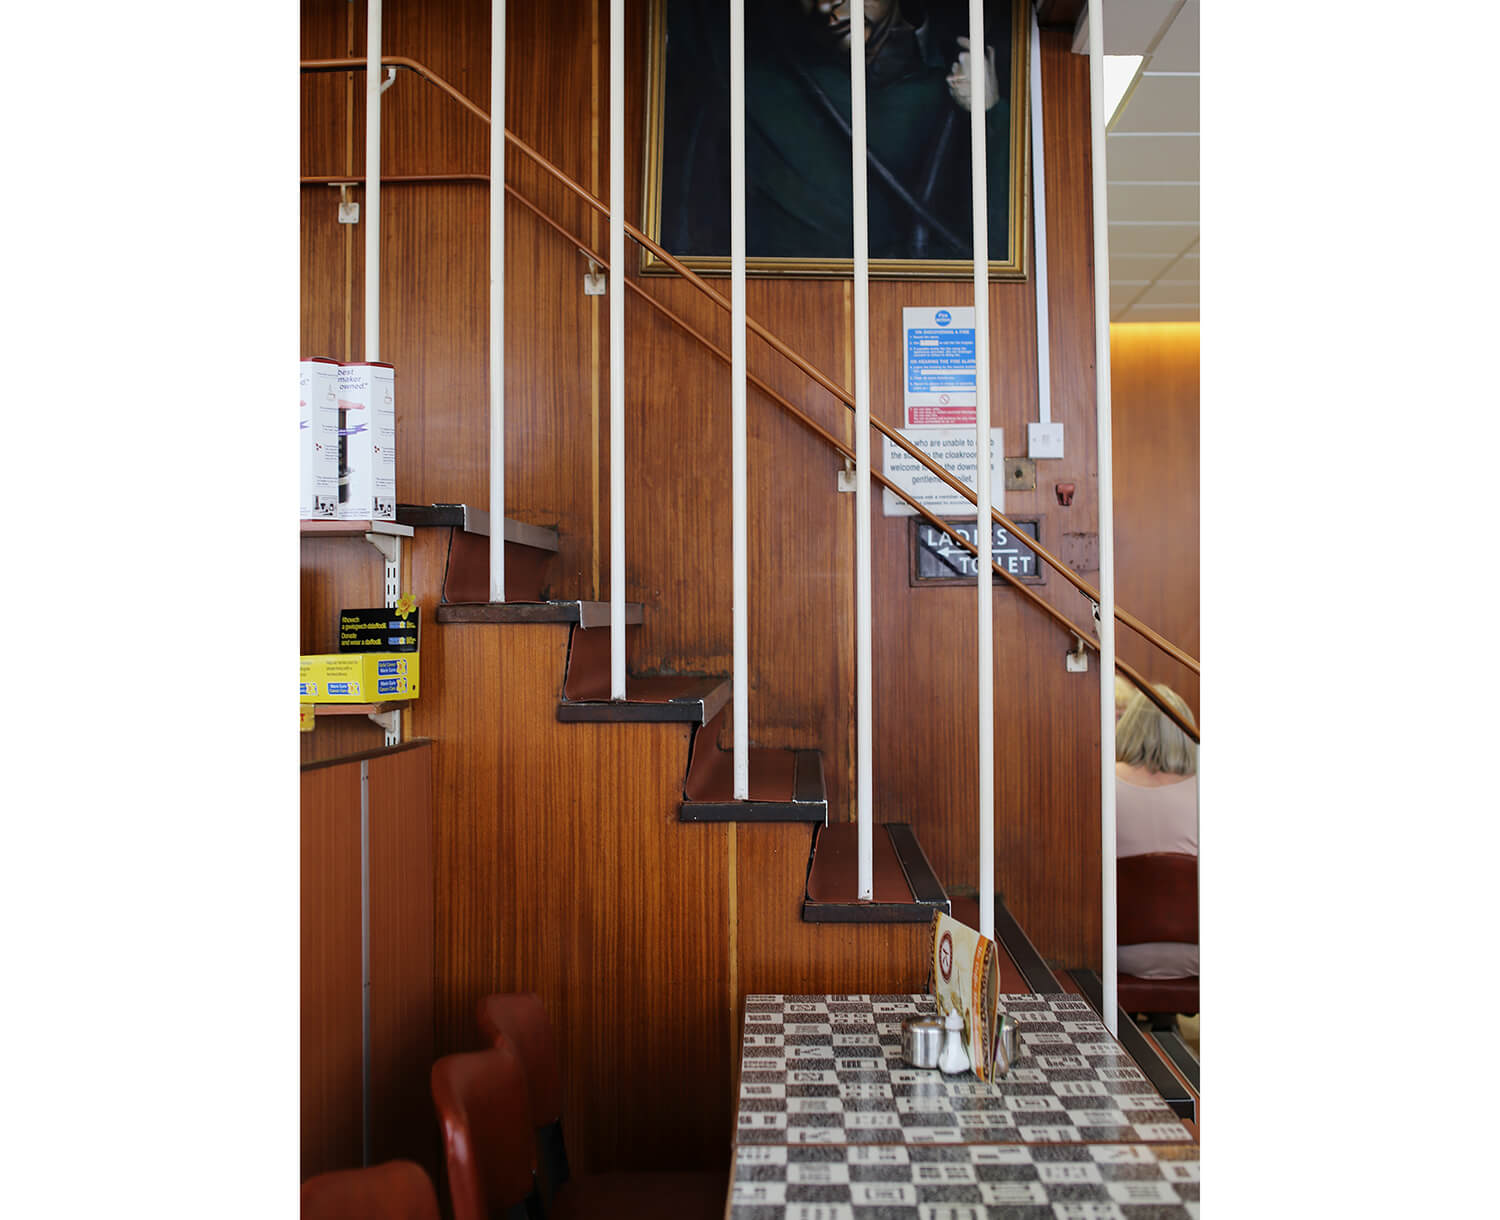 Kardomah-Cafe-Swansea-interior-staircase